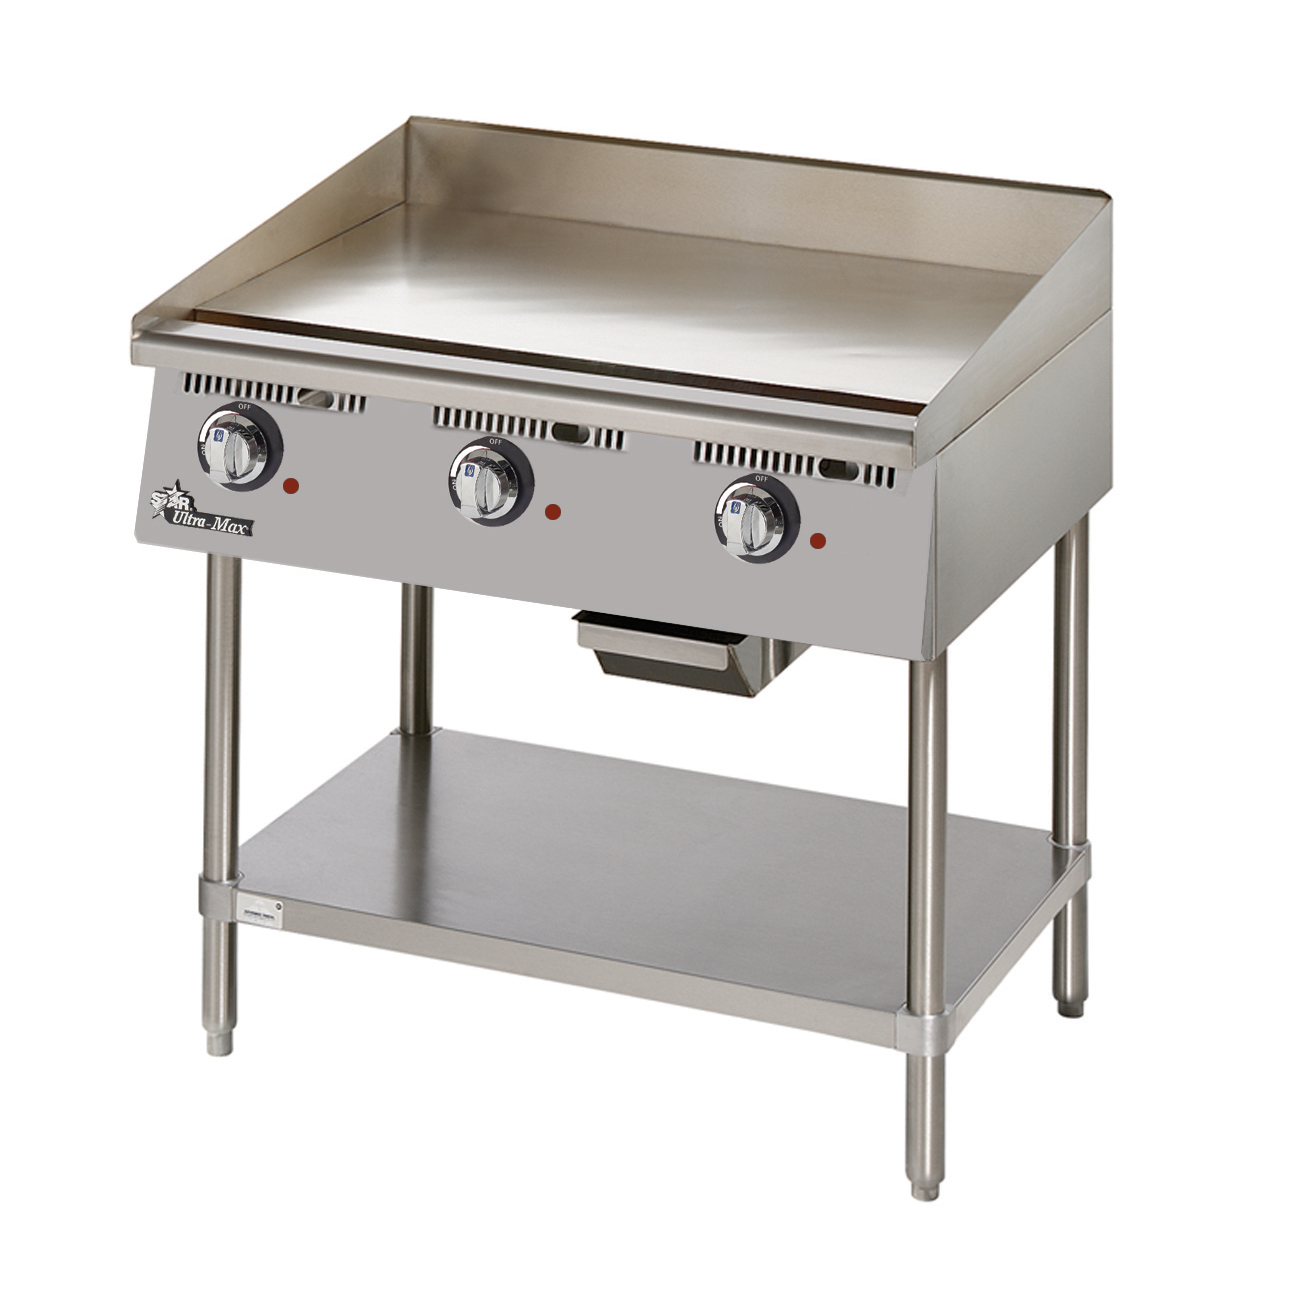 Star 748TA griddle, electric, countertop